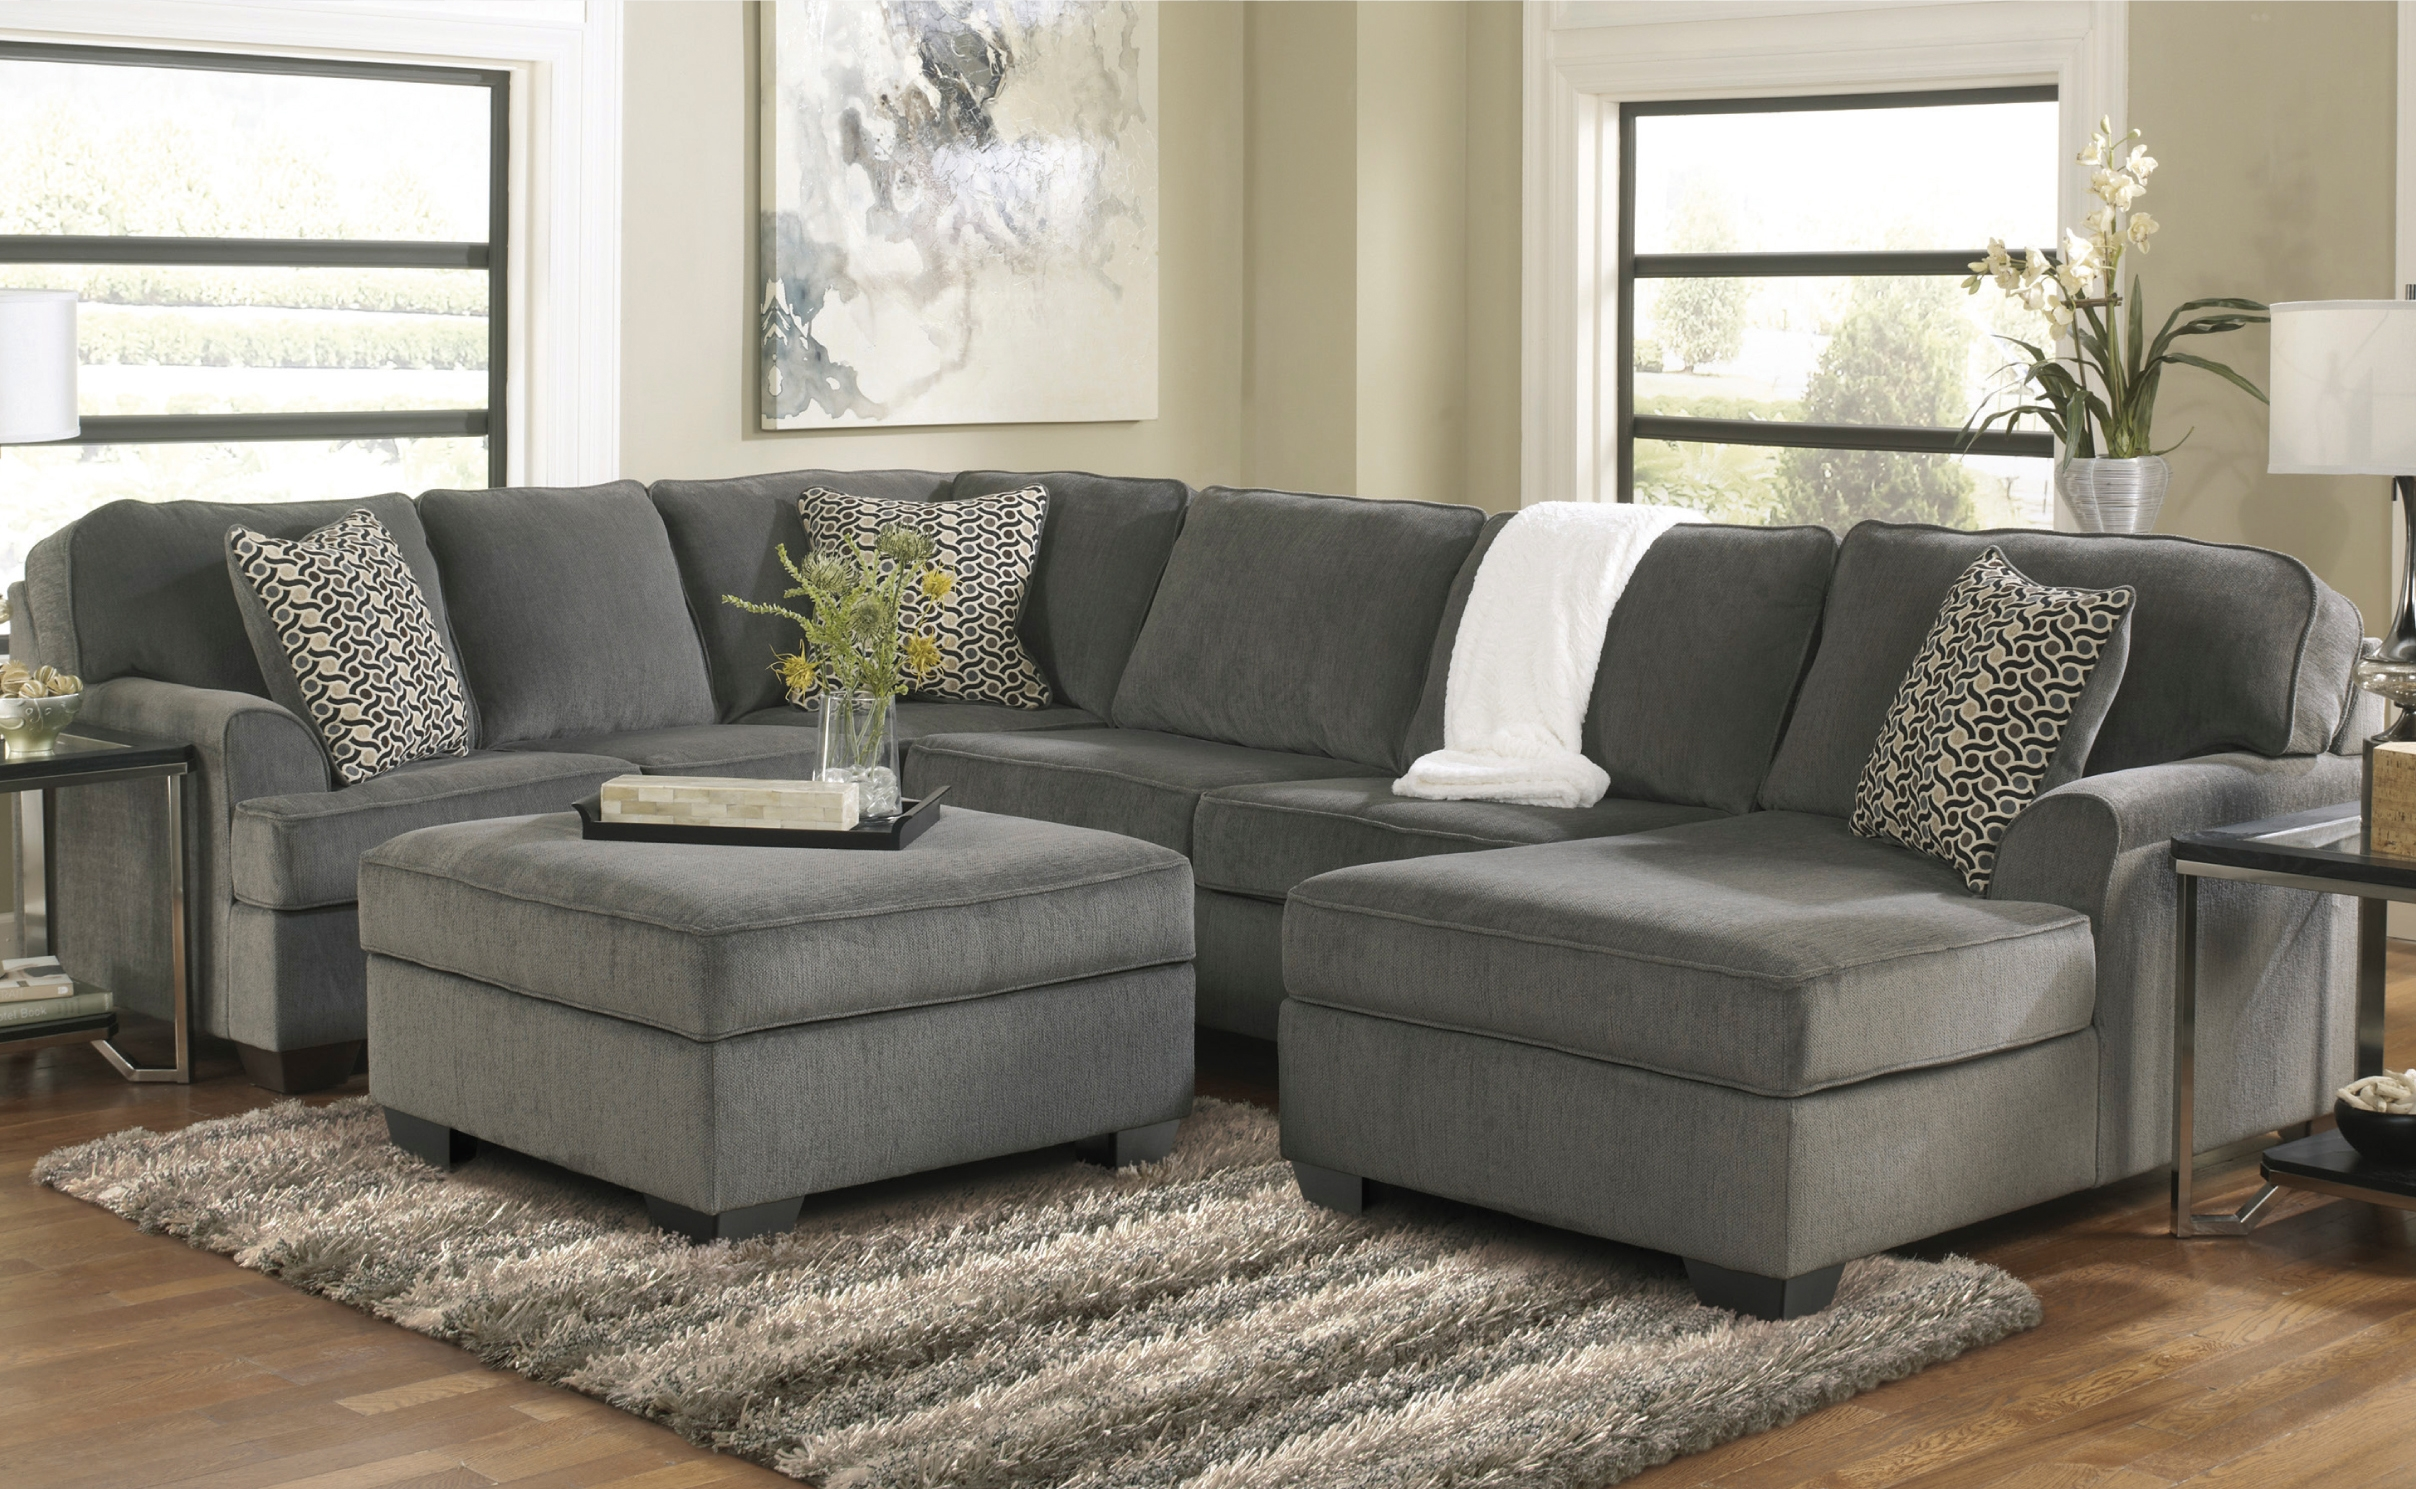 12 best ideas of closeout sectional sofas for Best cheap furniture stores